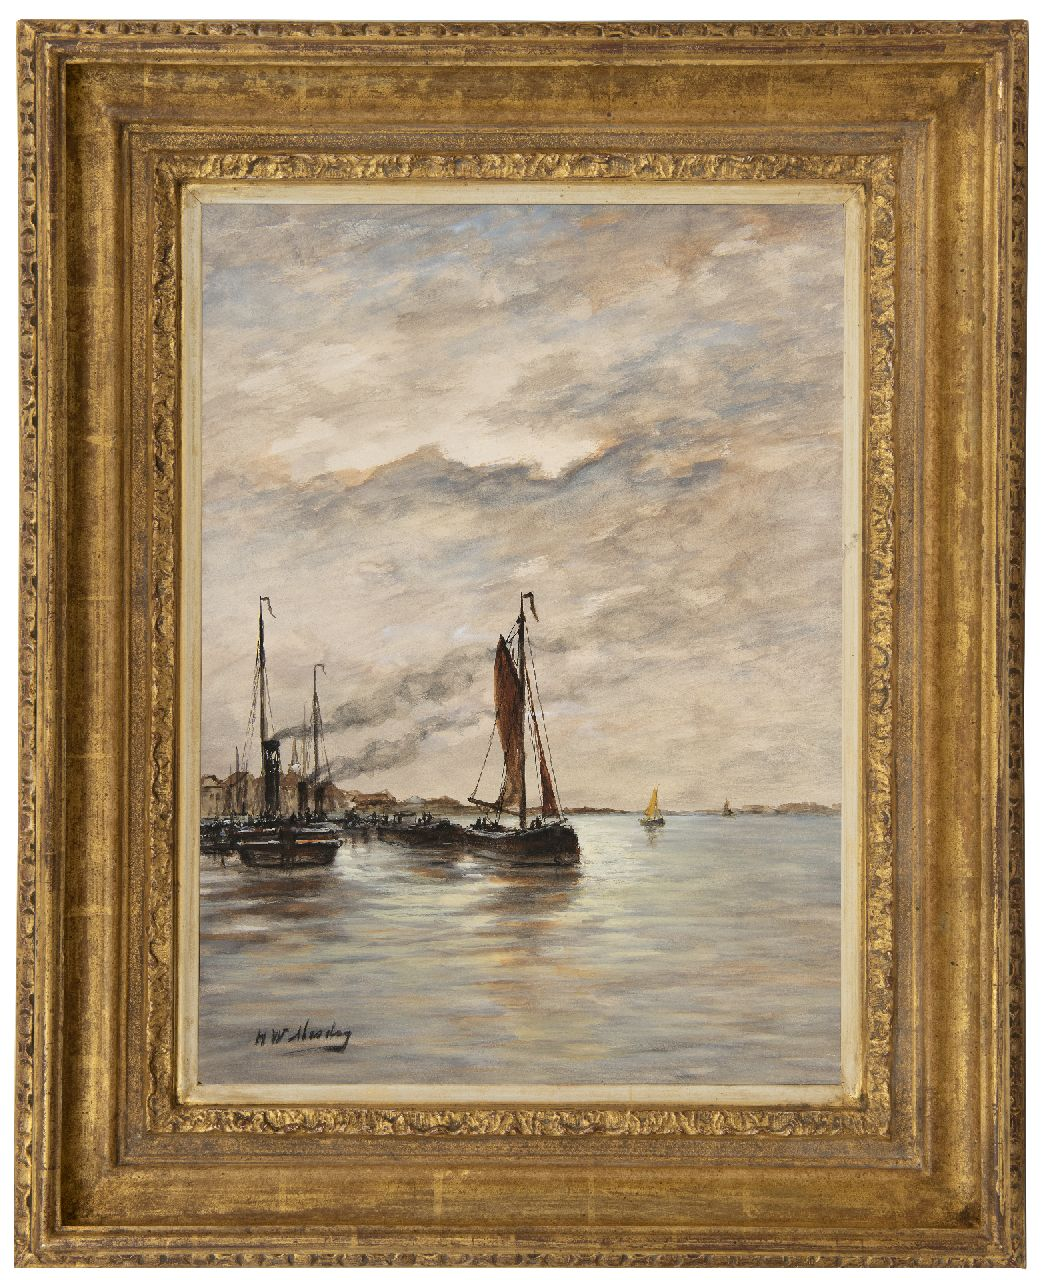 Mesdag H.W.  | Hendrik Willem Mesdag | Watercolours and drawings offered for sale | Fishing vessels in a harbour, watercolour on paper 43.2 x 31.8 cm, signed l.l.